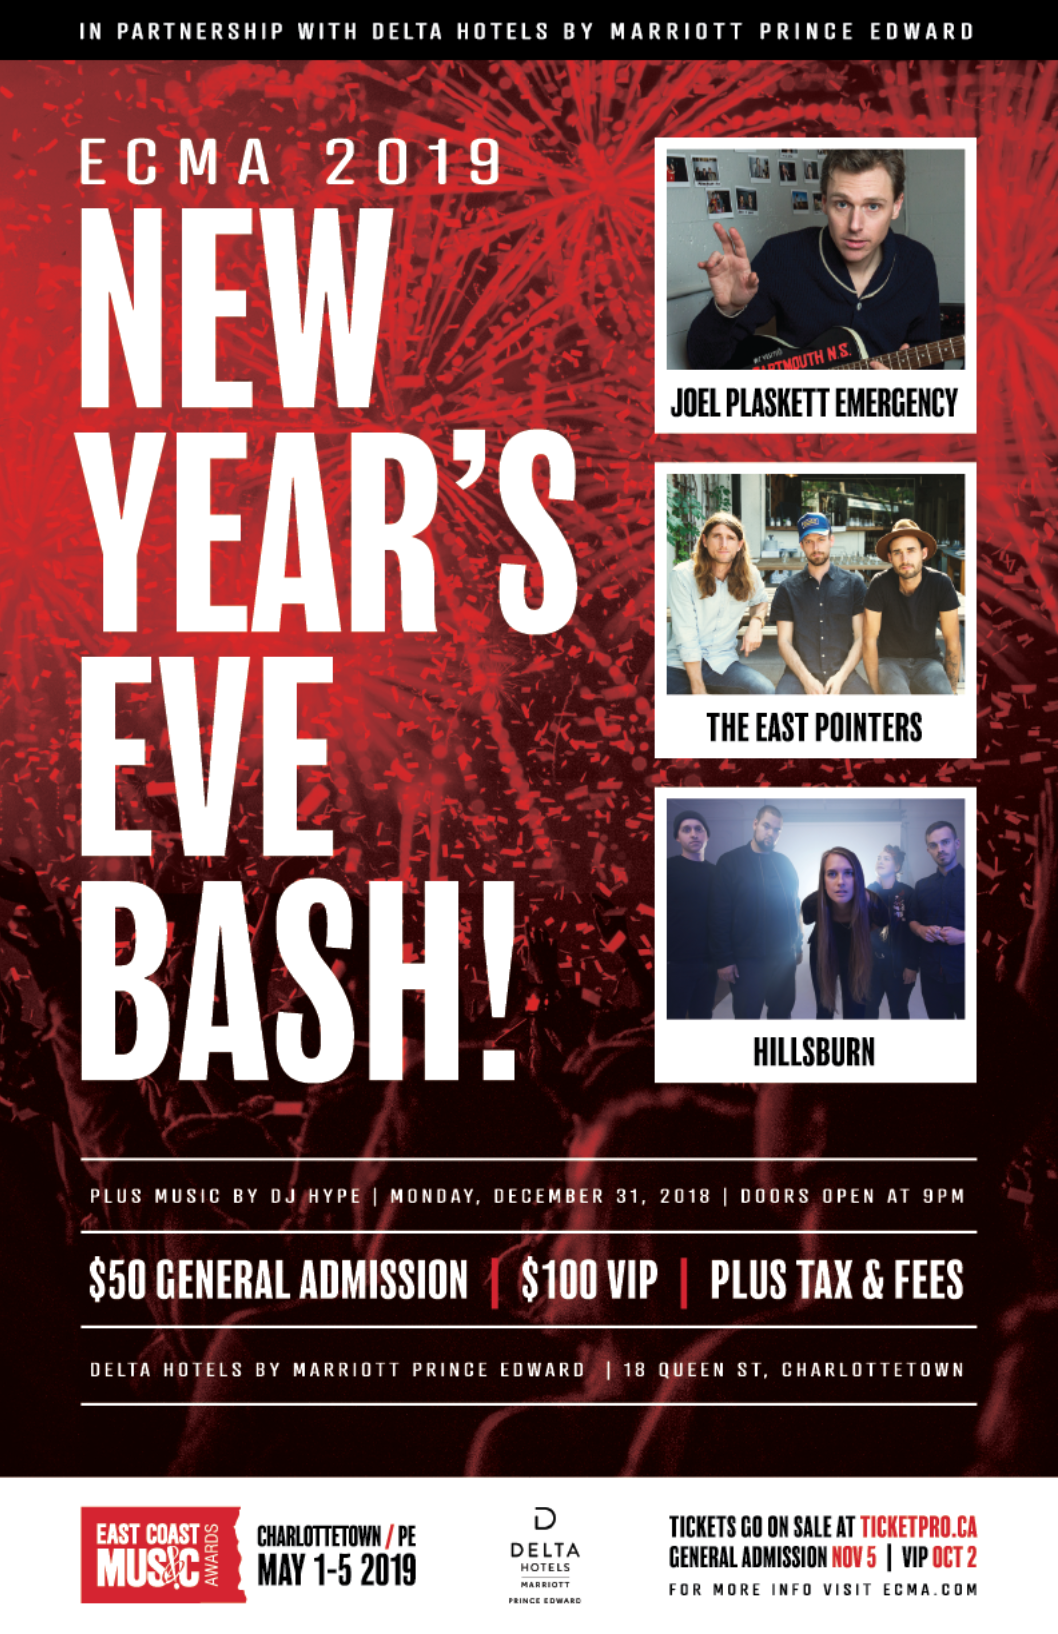 VIP Tickets for ECMA 2019 New Year's Eve Bash in Charlottetown are ON SALE NOW!